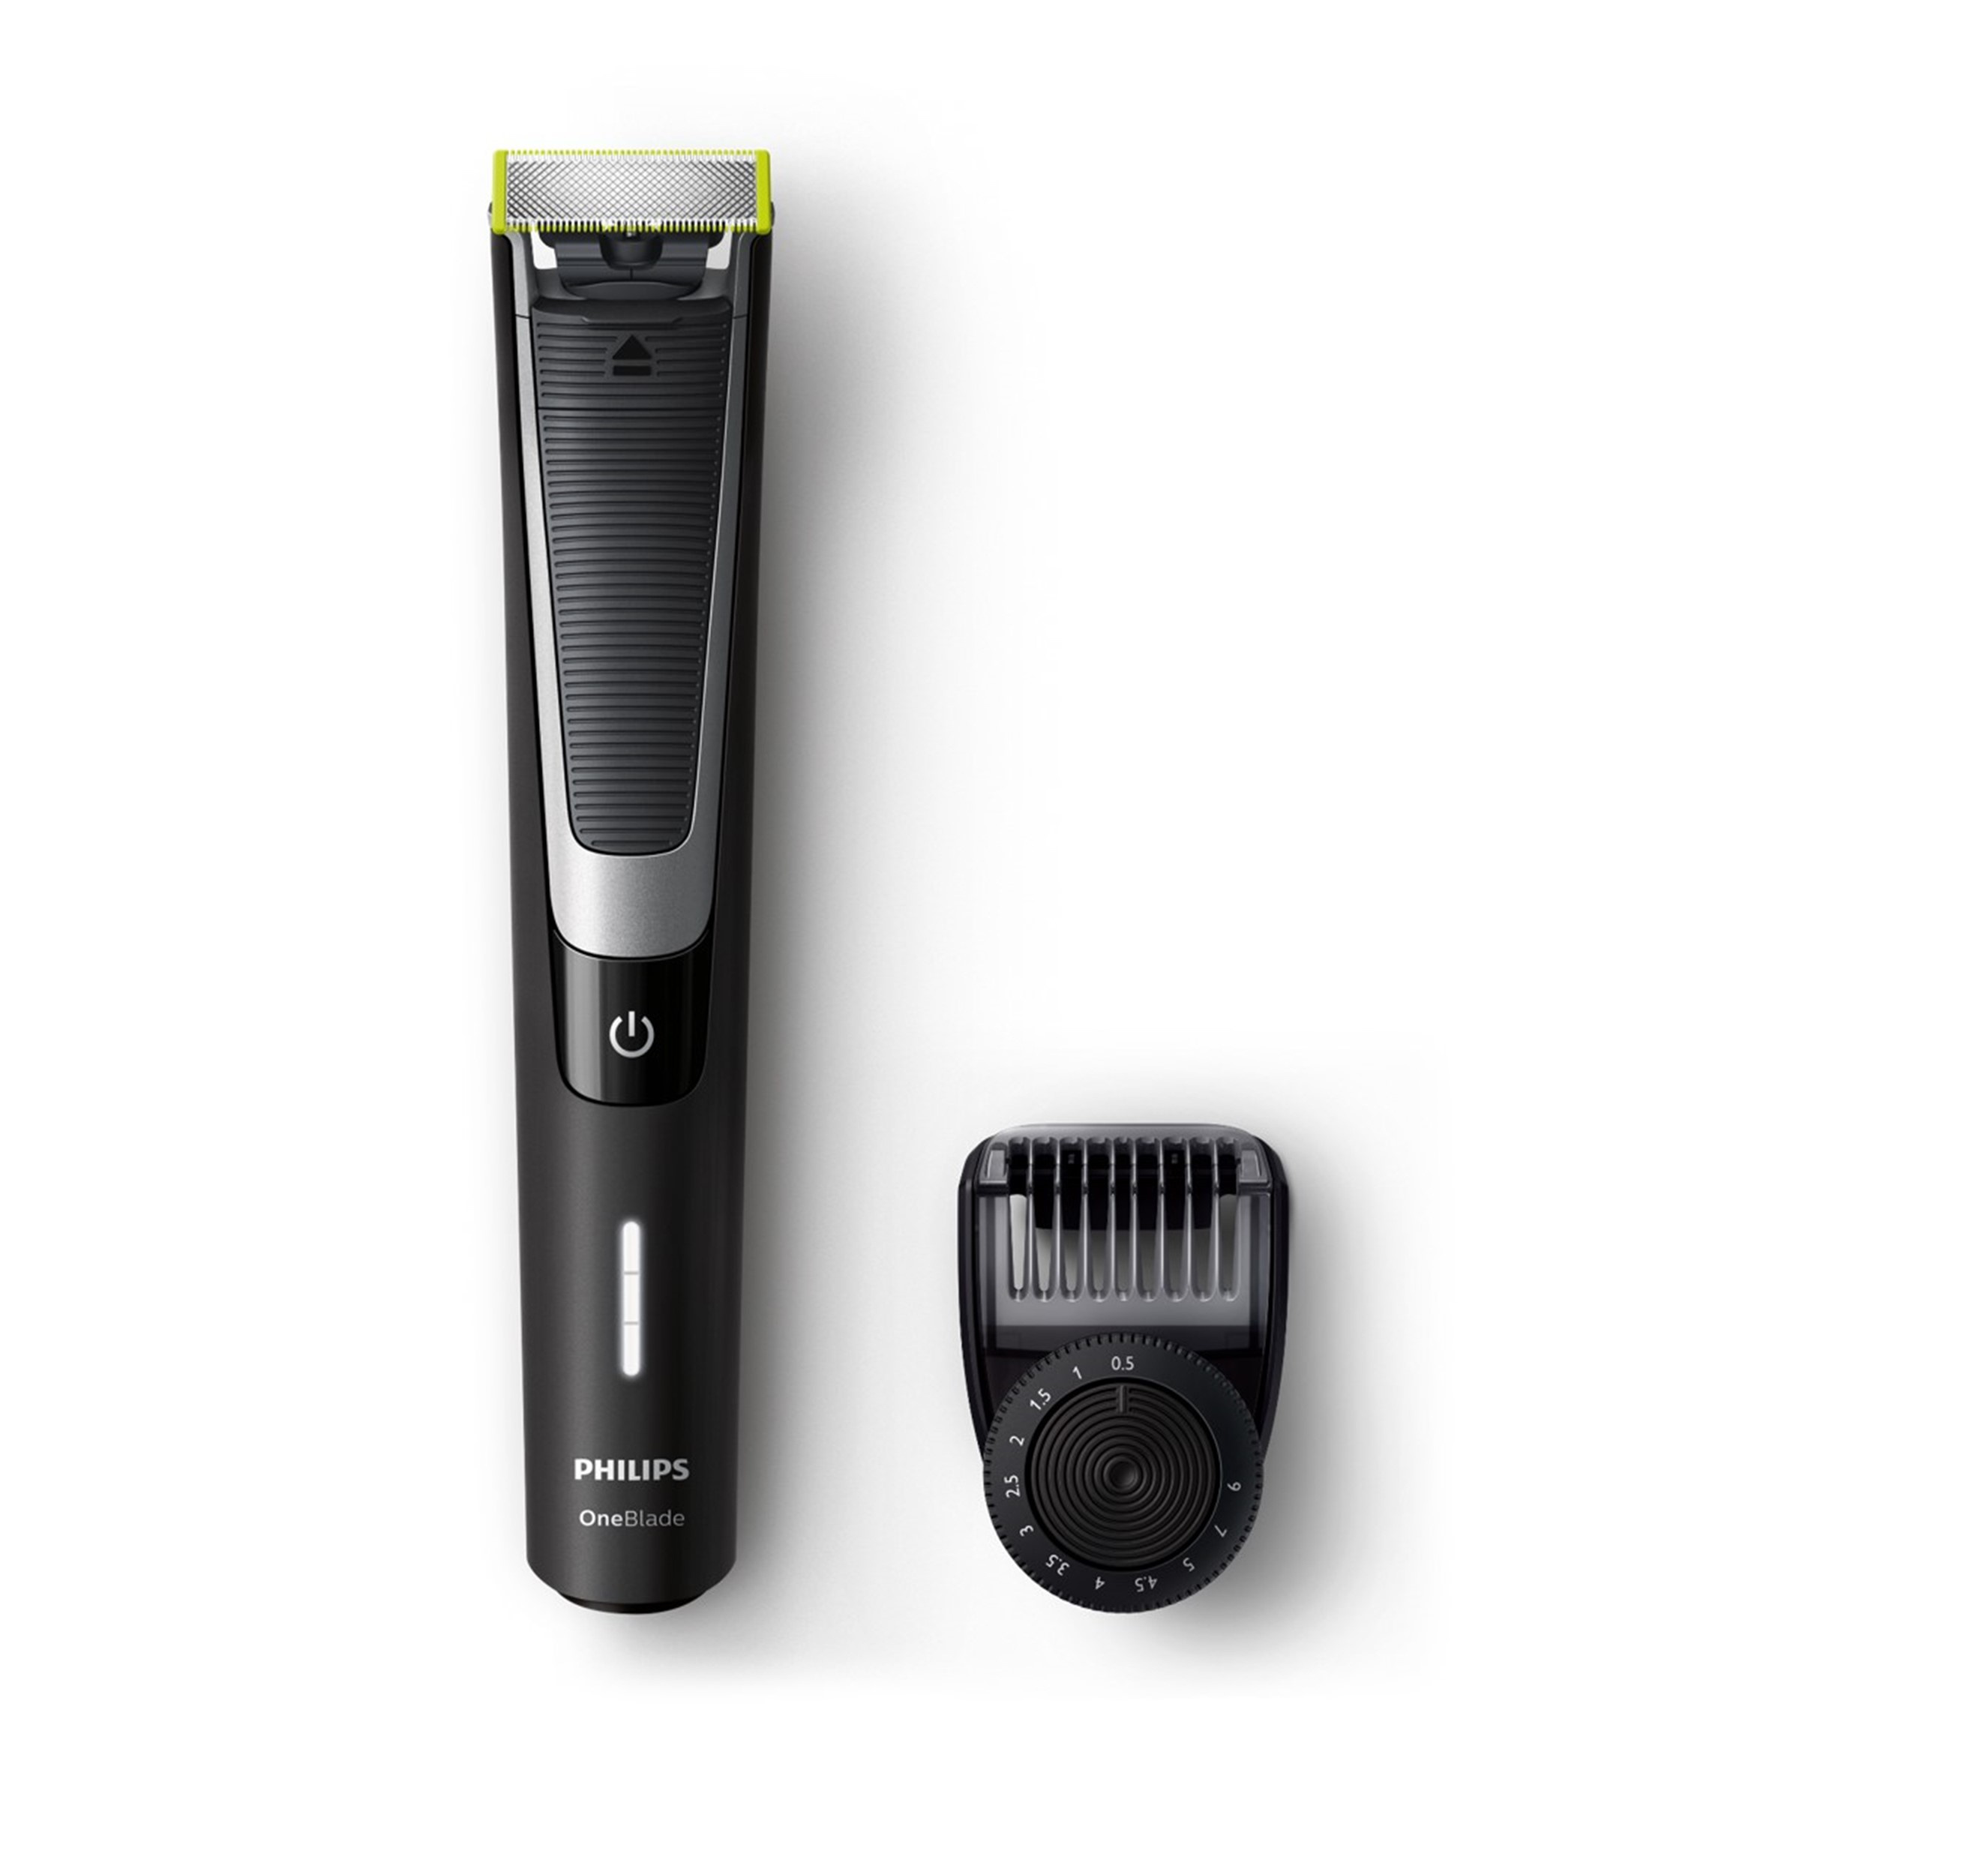 Oneblade Qp6510 20 Philips